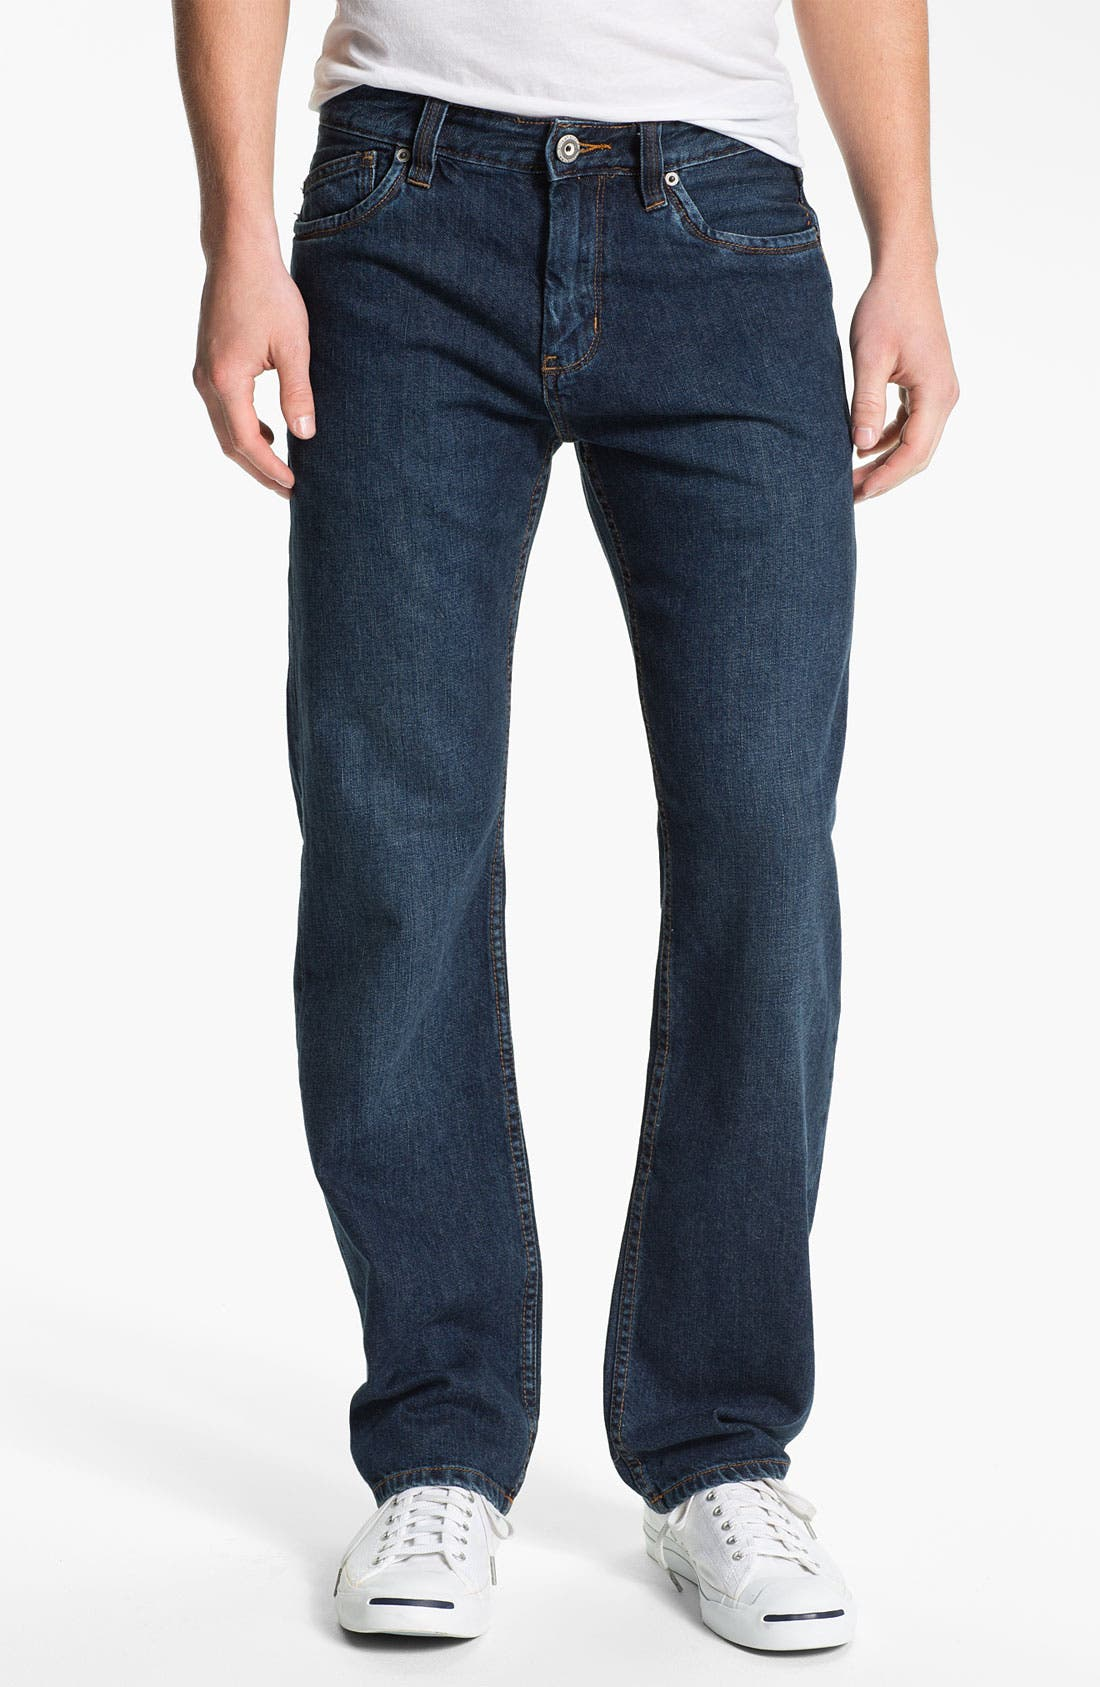 Main Image - Tommy Bahama Denim 'Steve Standard Fit' Jeans (Dark)